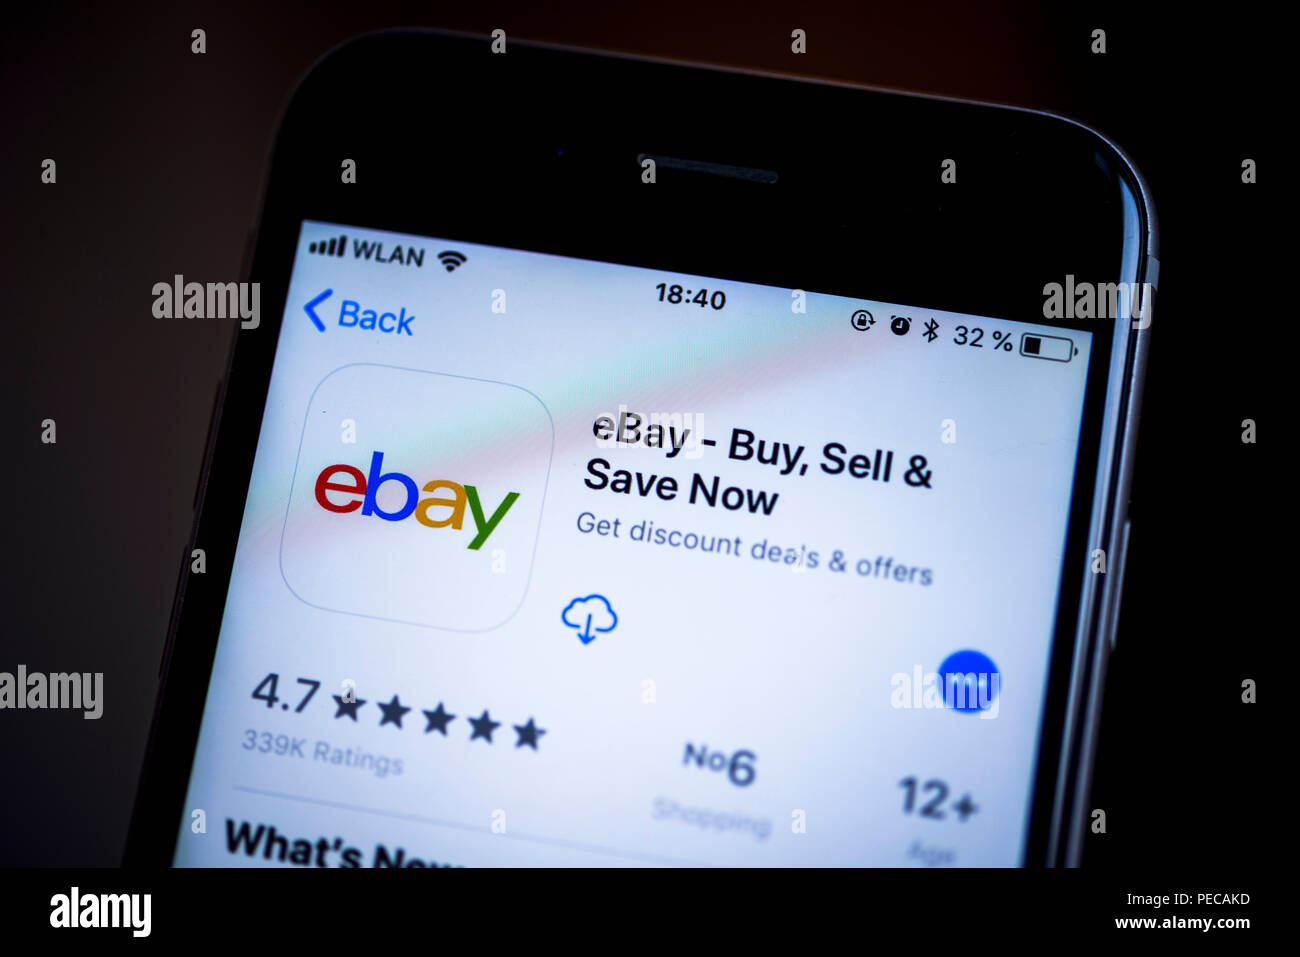 Ebay App In The Apple App Store App Icon Display Iphone Ios Smartphone Display Screenshot Close Up Detail Full Size Stock Photo Alamy